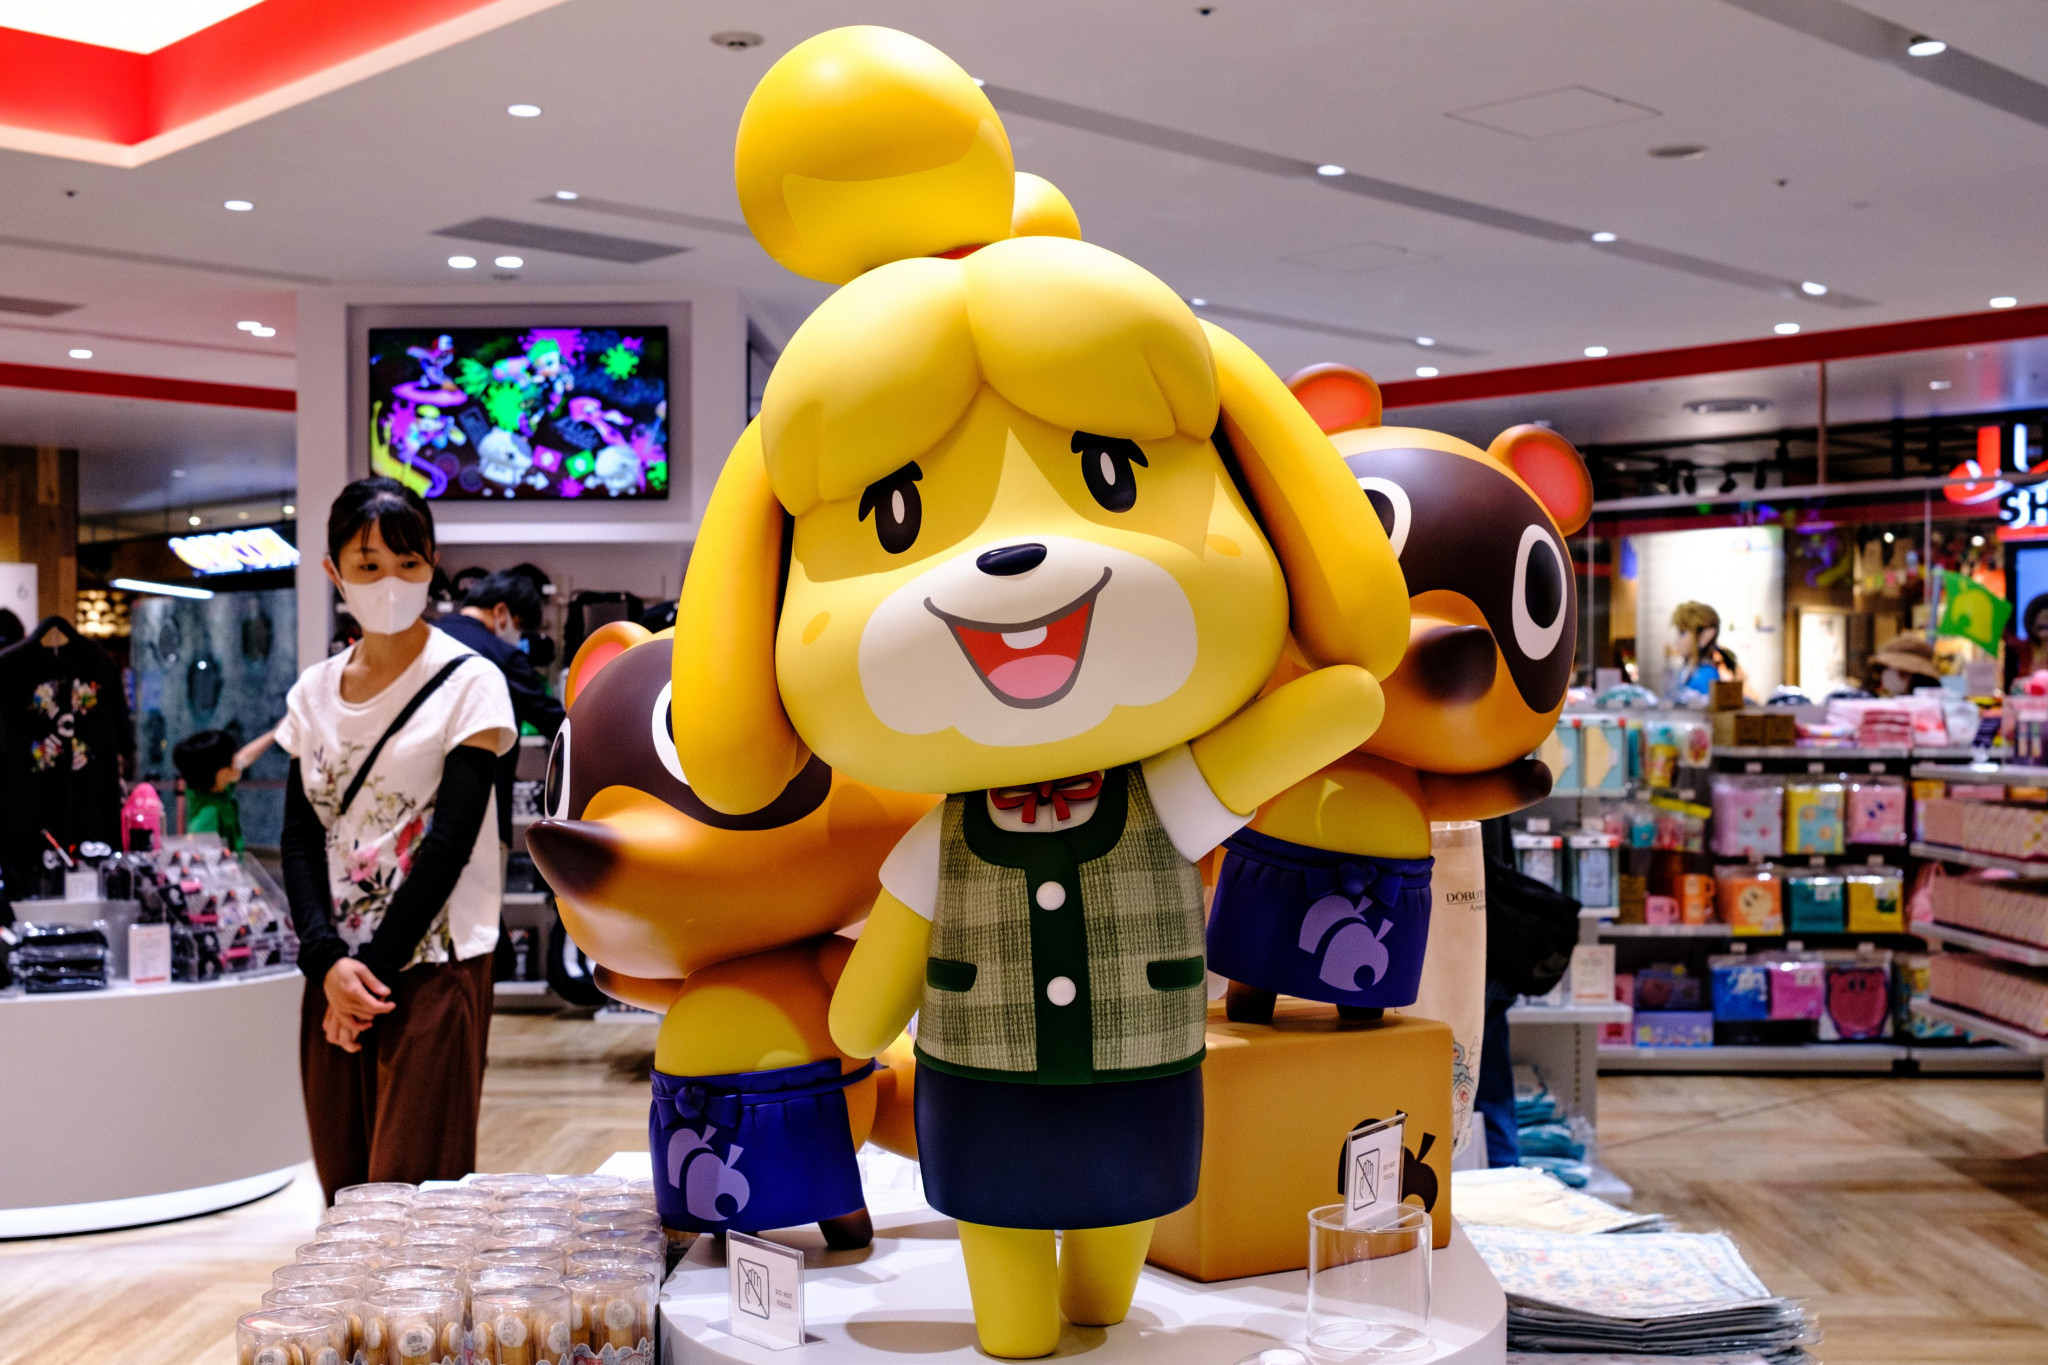 The new game in Nintendo's Animal Crossing series has proved very successful ©Getty Images